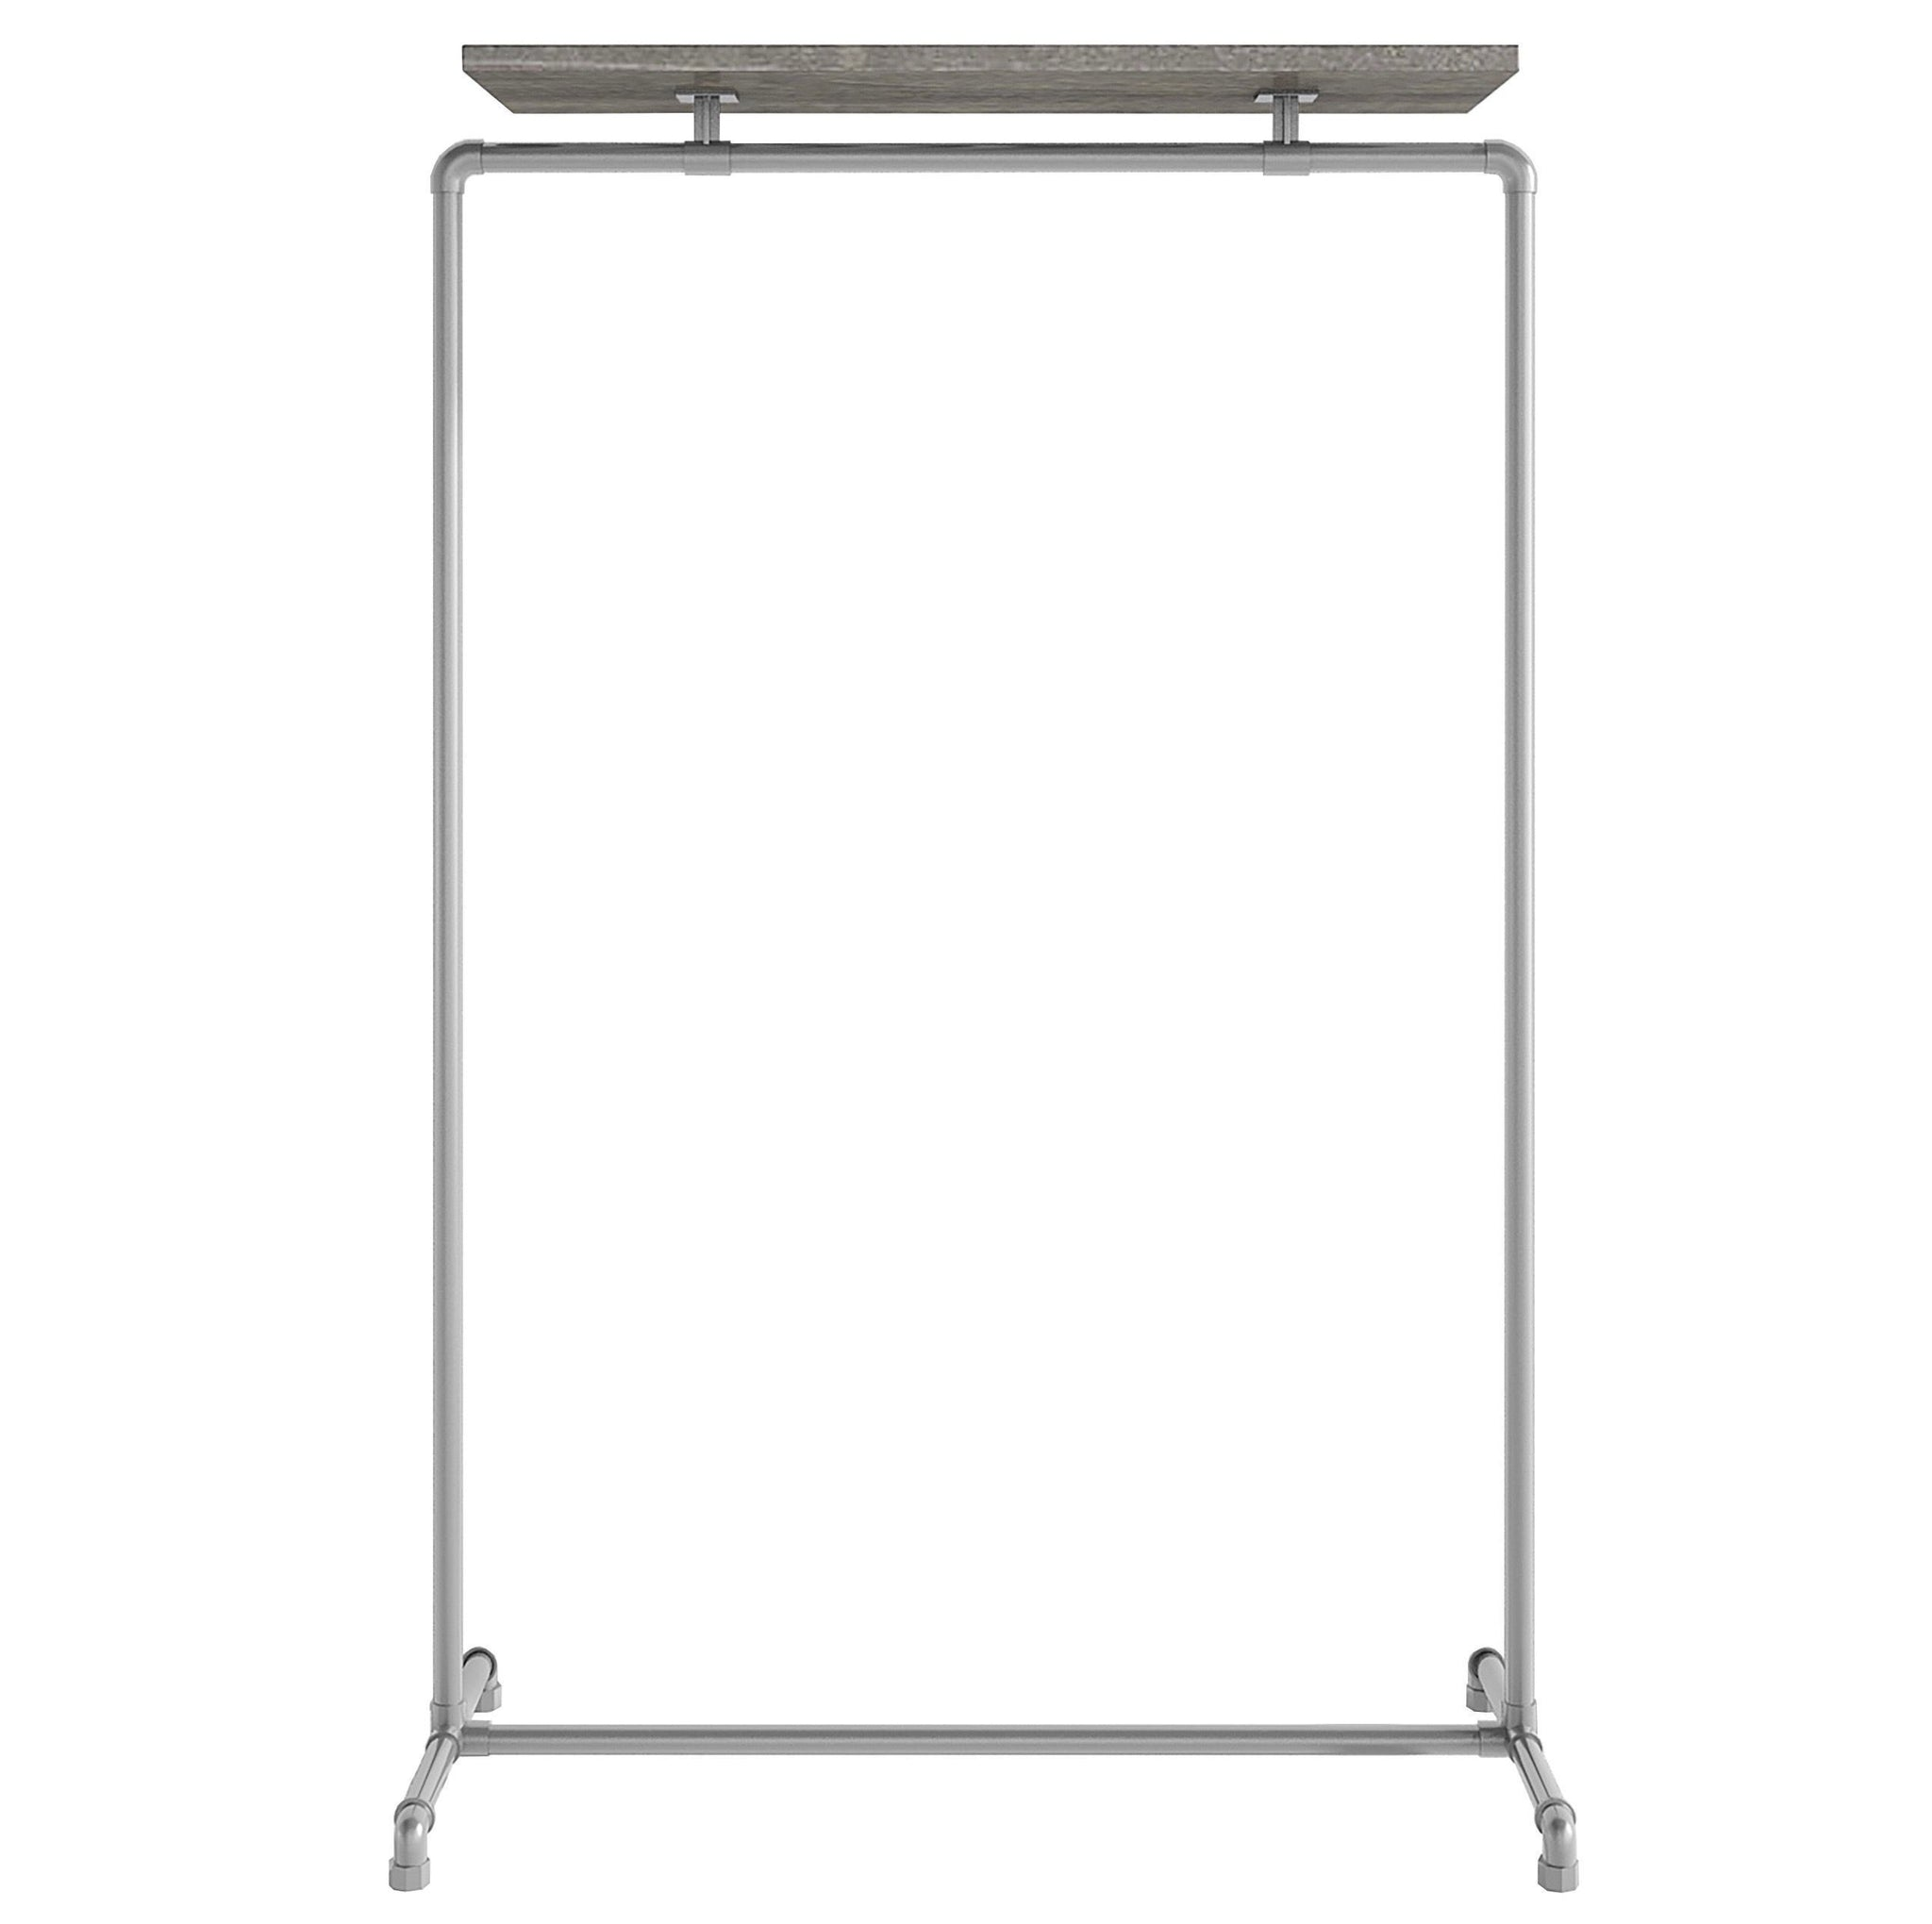 Ziito Clothes Rail B1 / 100 cm / Uden Wood Top Shelf Tøjstativ